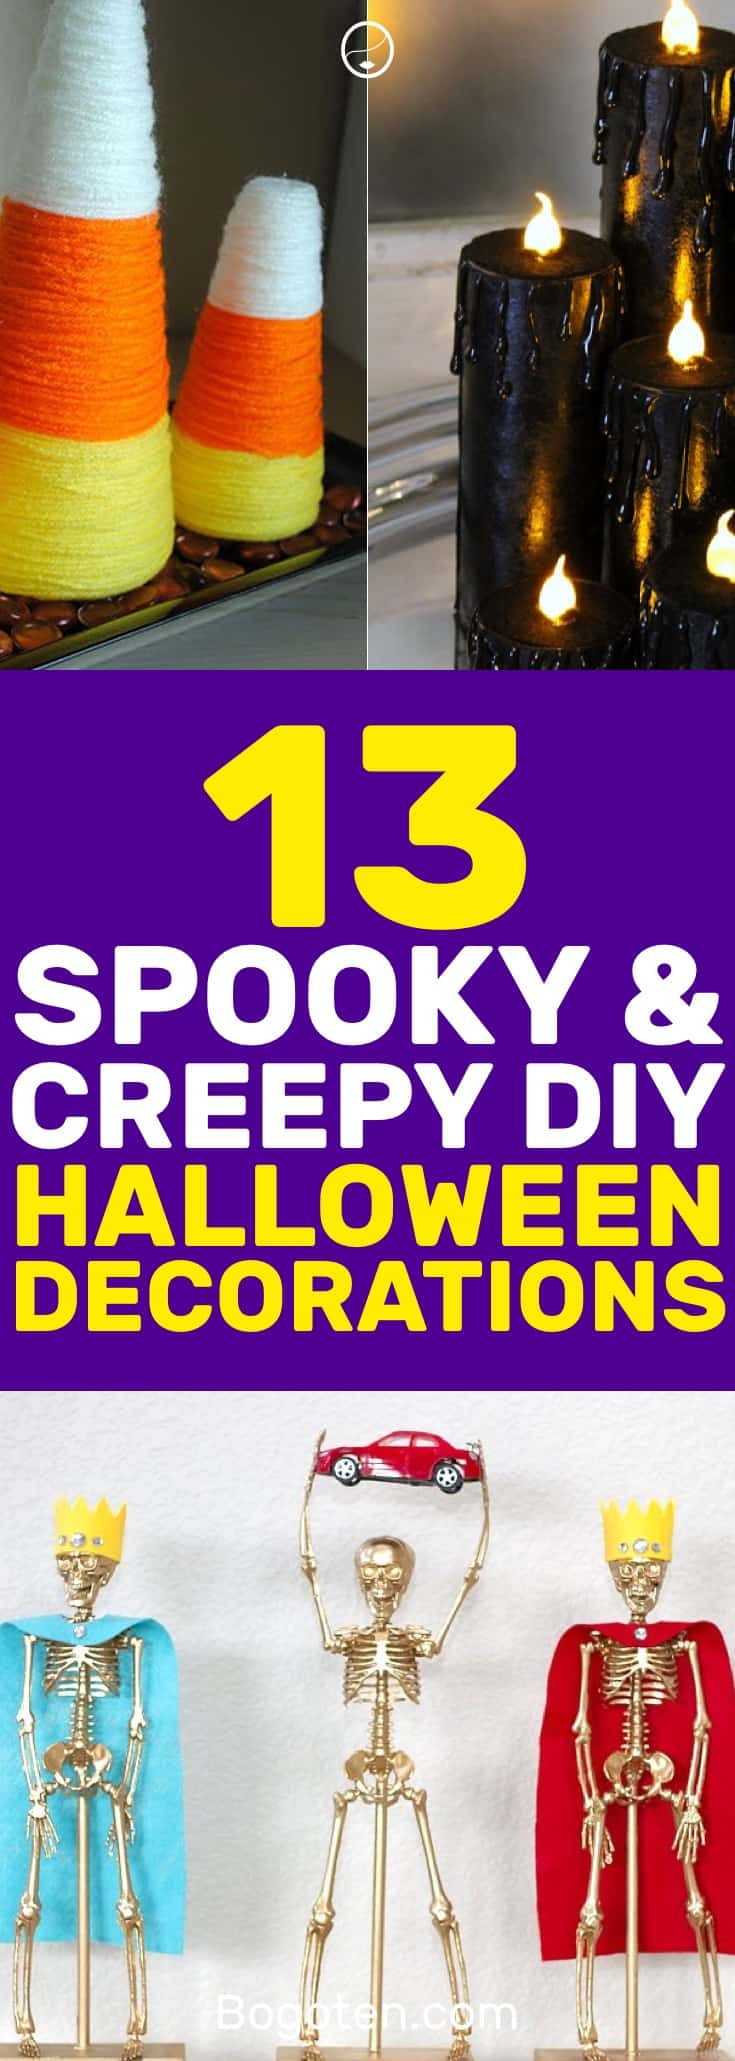 Need some DIY Halloween decoration ideas? I found these to be super useful and easy to make. I love ghosts everywhere! #DIY #Crafts #HomeDecor #Halloween